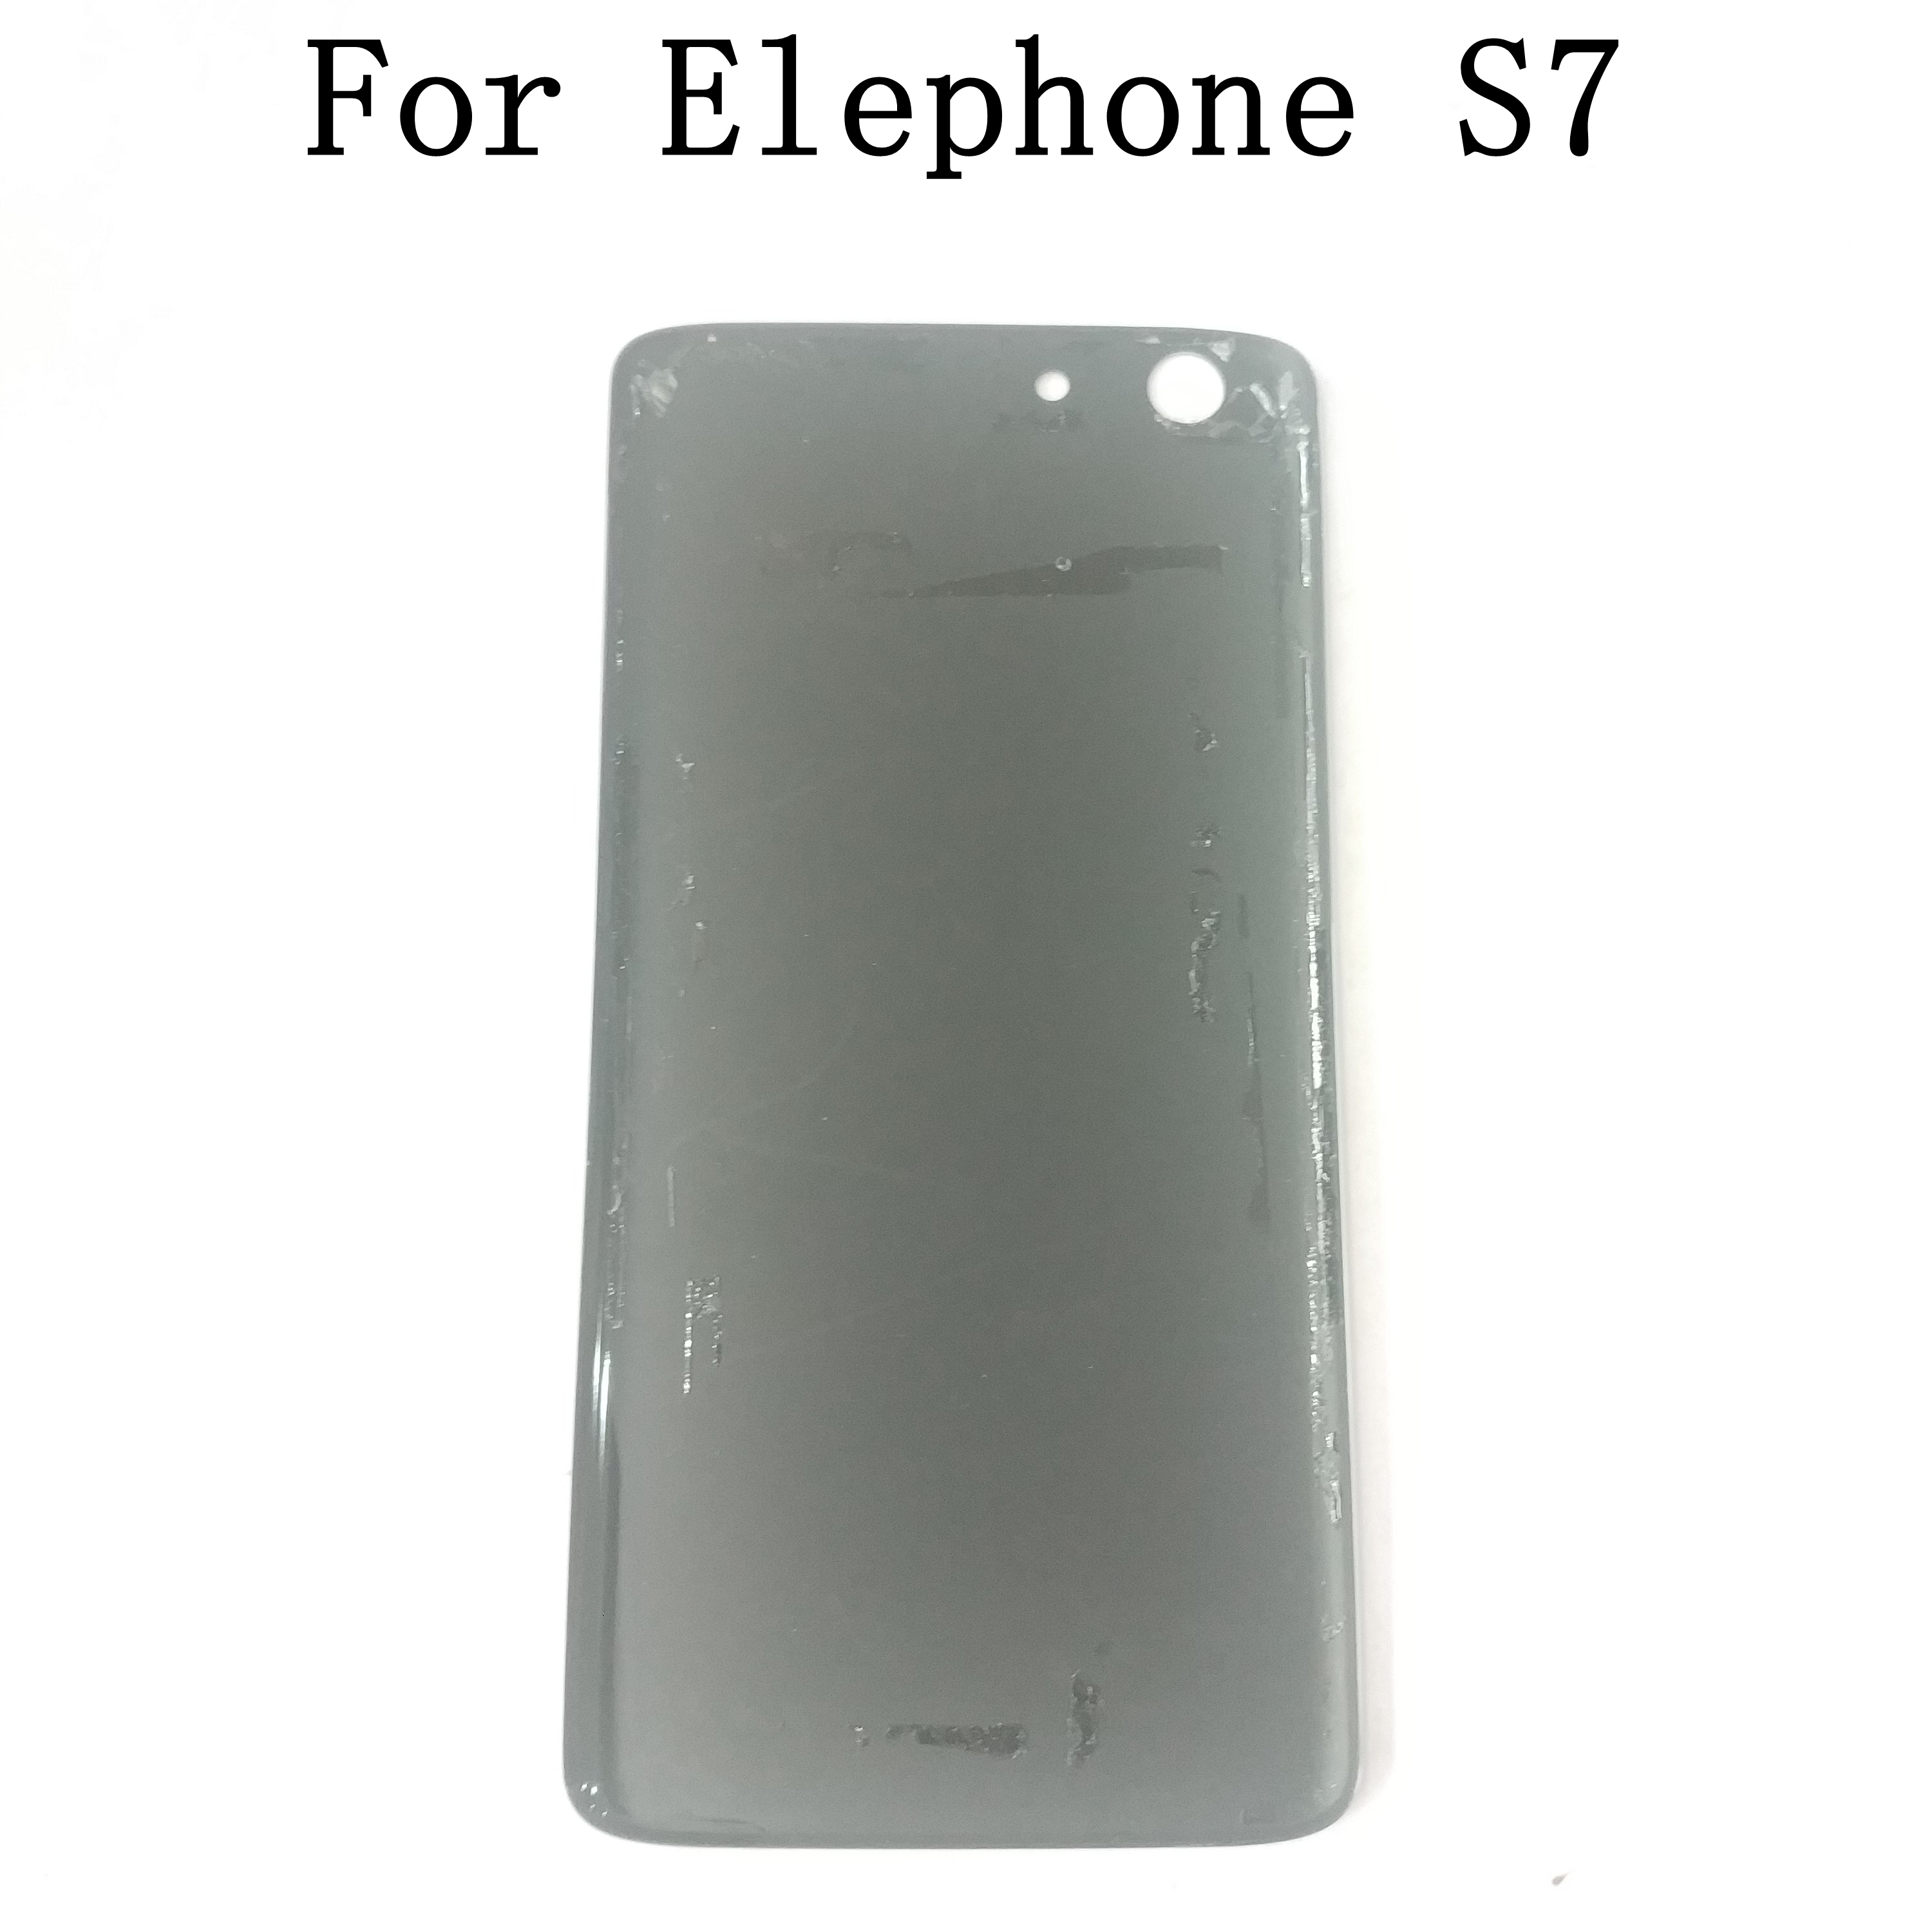 Elephone S7 Used Protective Battery Case Cover For Elephone S7 Repair Fixing Part Replacement|Mobile Phone Housings & Frames| |  -